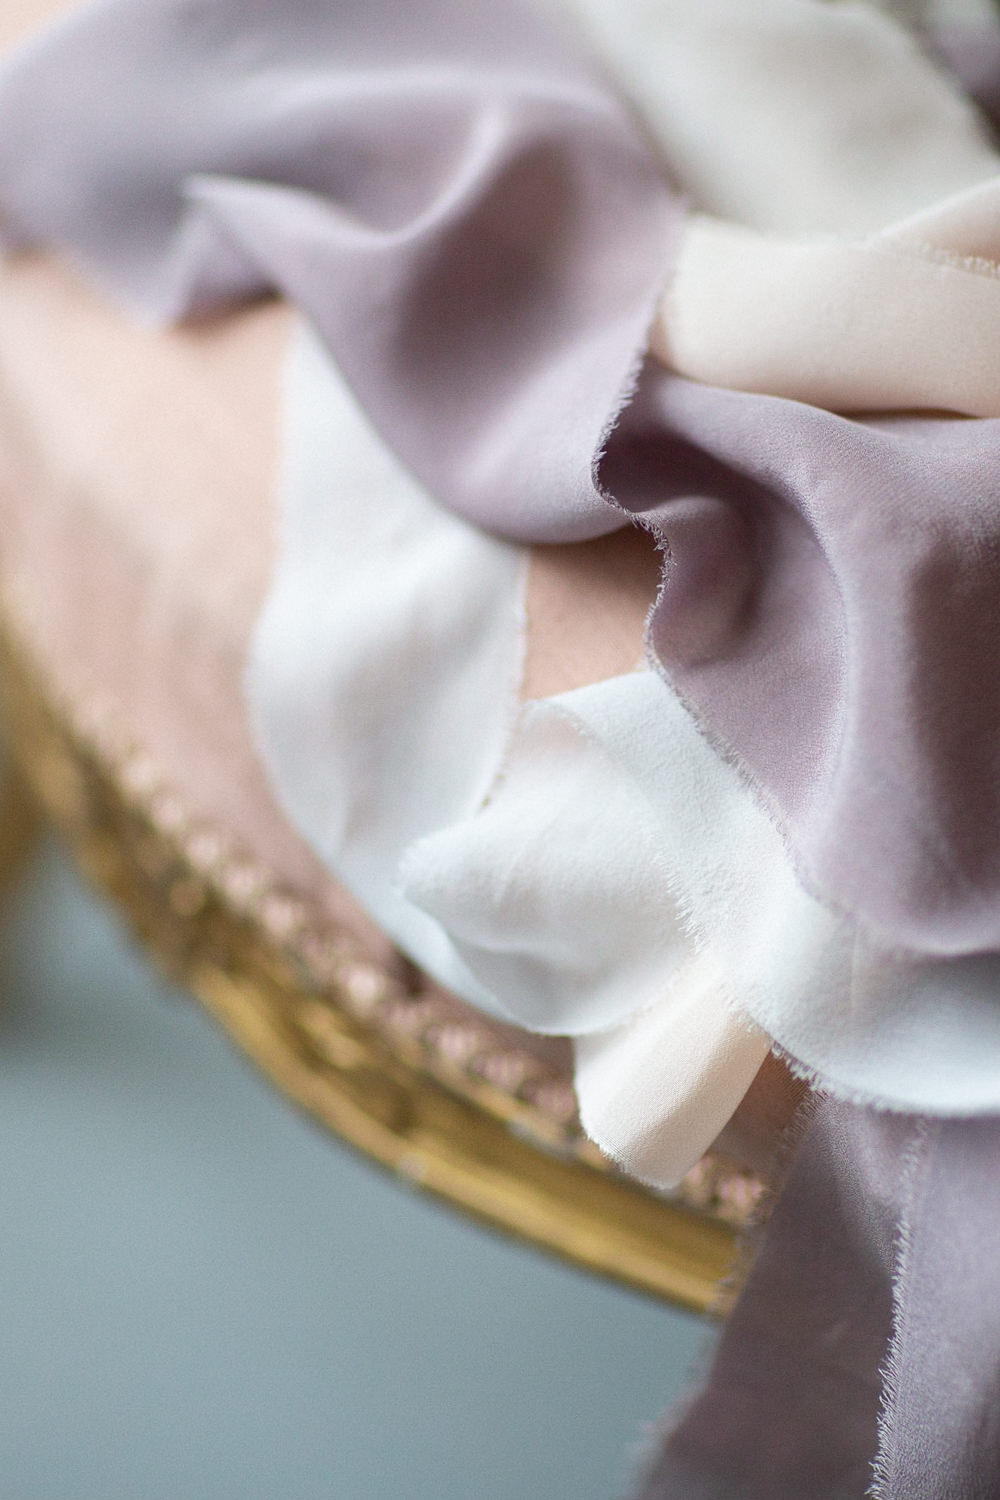 Modern Dance Ballet Inspired Fine Art Editorial Somerley House Mauve Lilac Dusty Pink Natural Dyed Silk Ribbon | Romantic Soft Wedding Ideas Siobhan H Photography